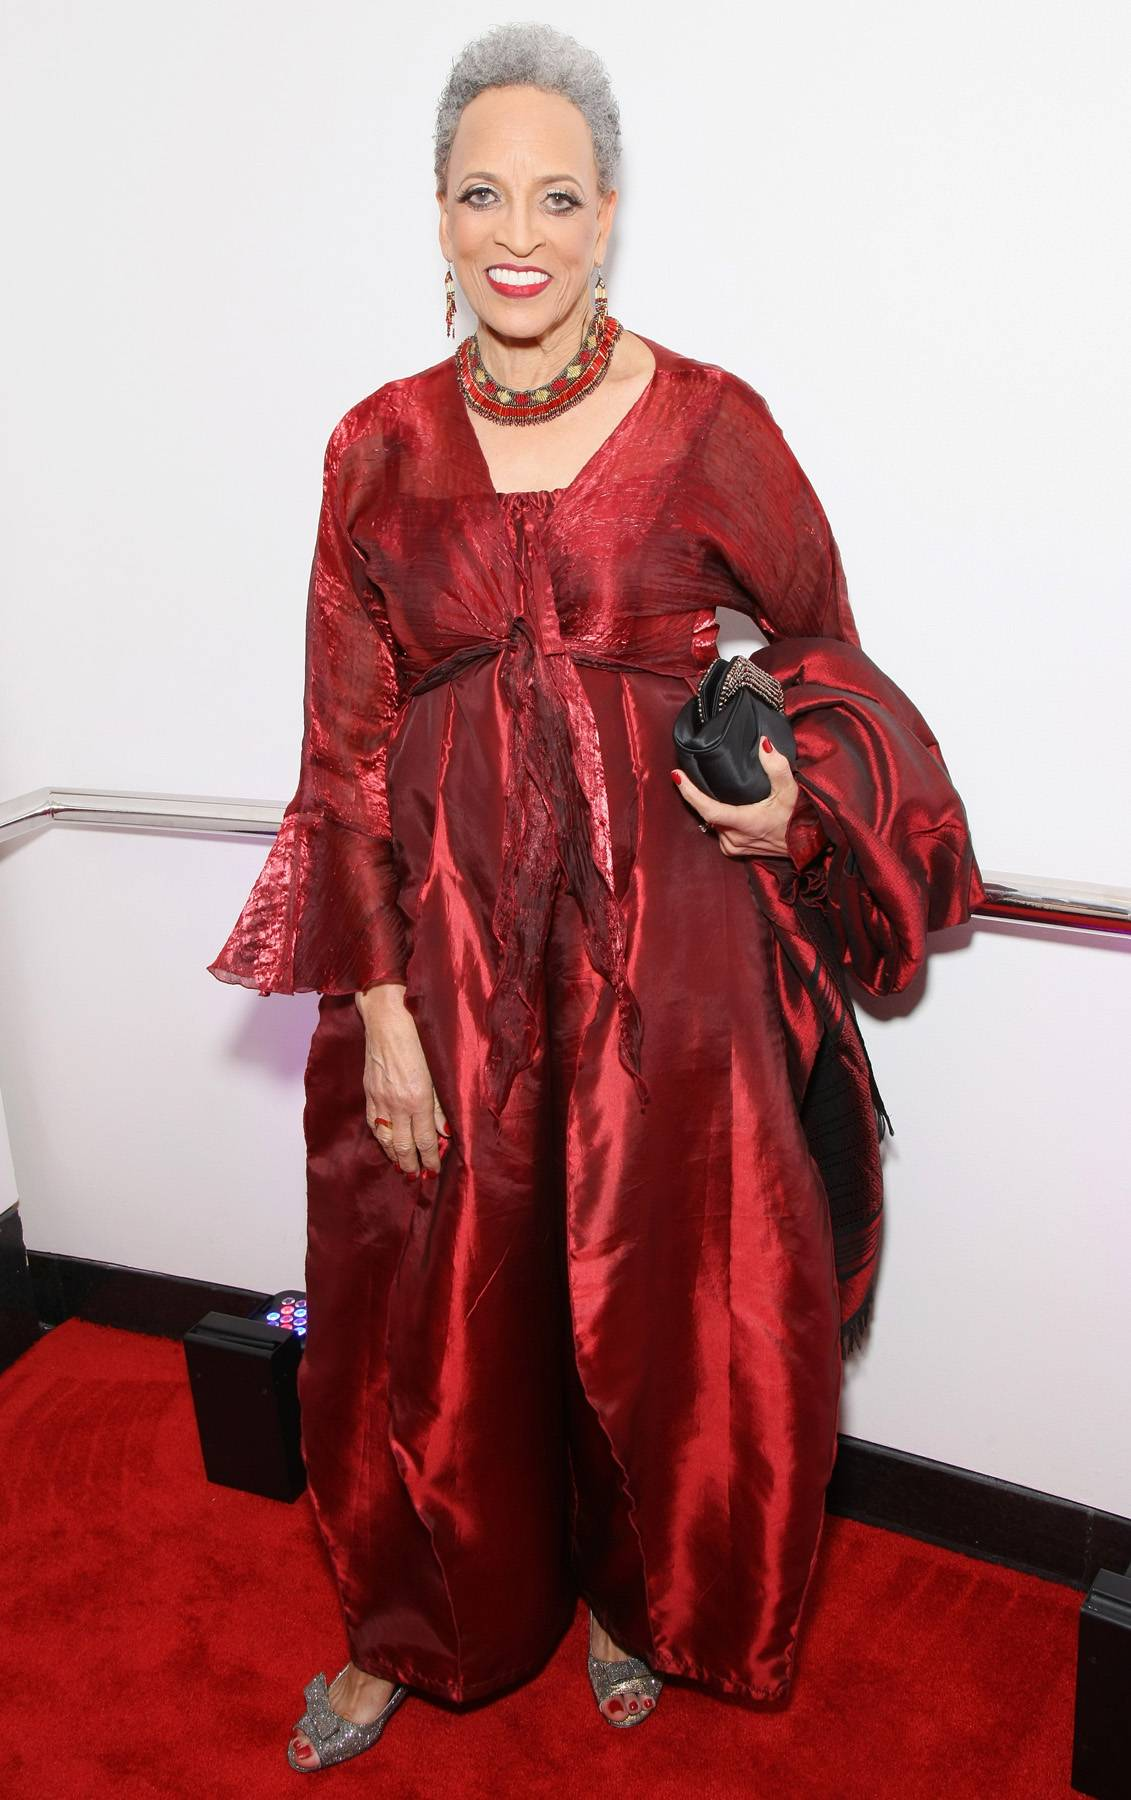 Crimson and Clean  - The BET Honors Education Award winner Dr. Johnnetta B. Cole glides across the red carpet in her royal crimson jumpsuit. (Photo: Bennett Raglin/BET/Getty Images for BET)